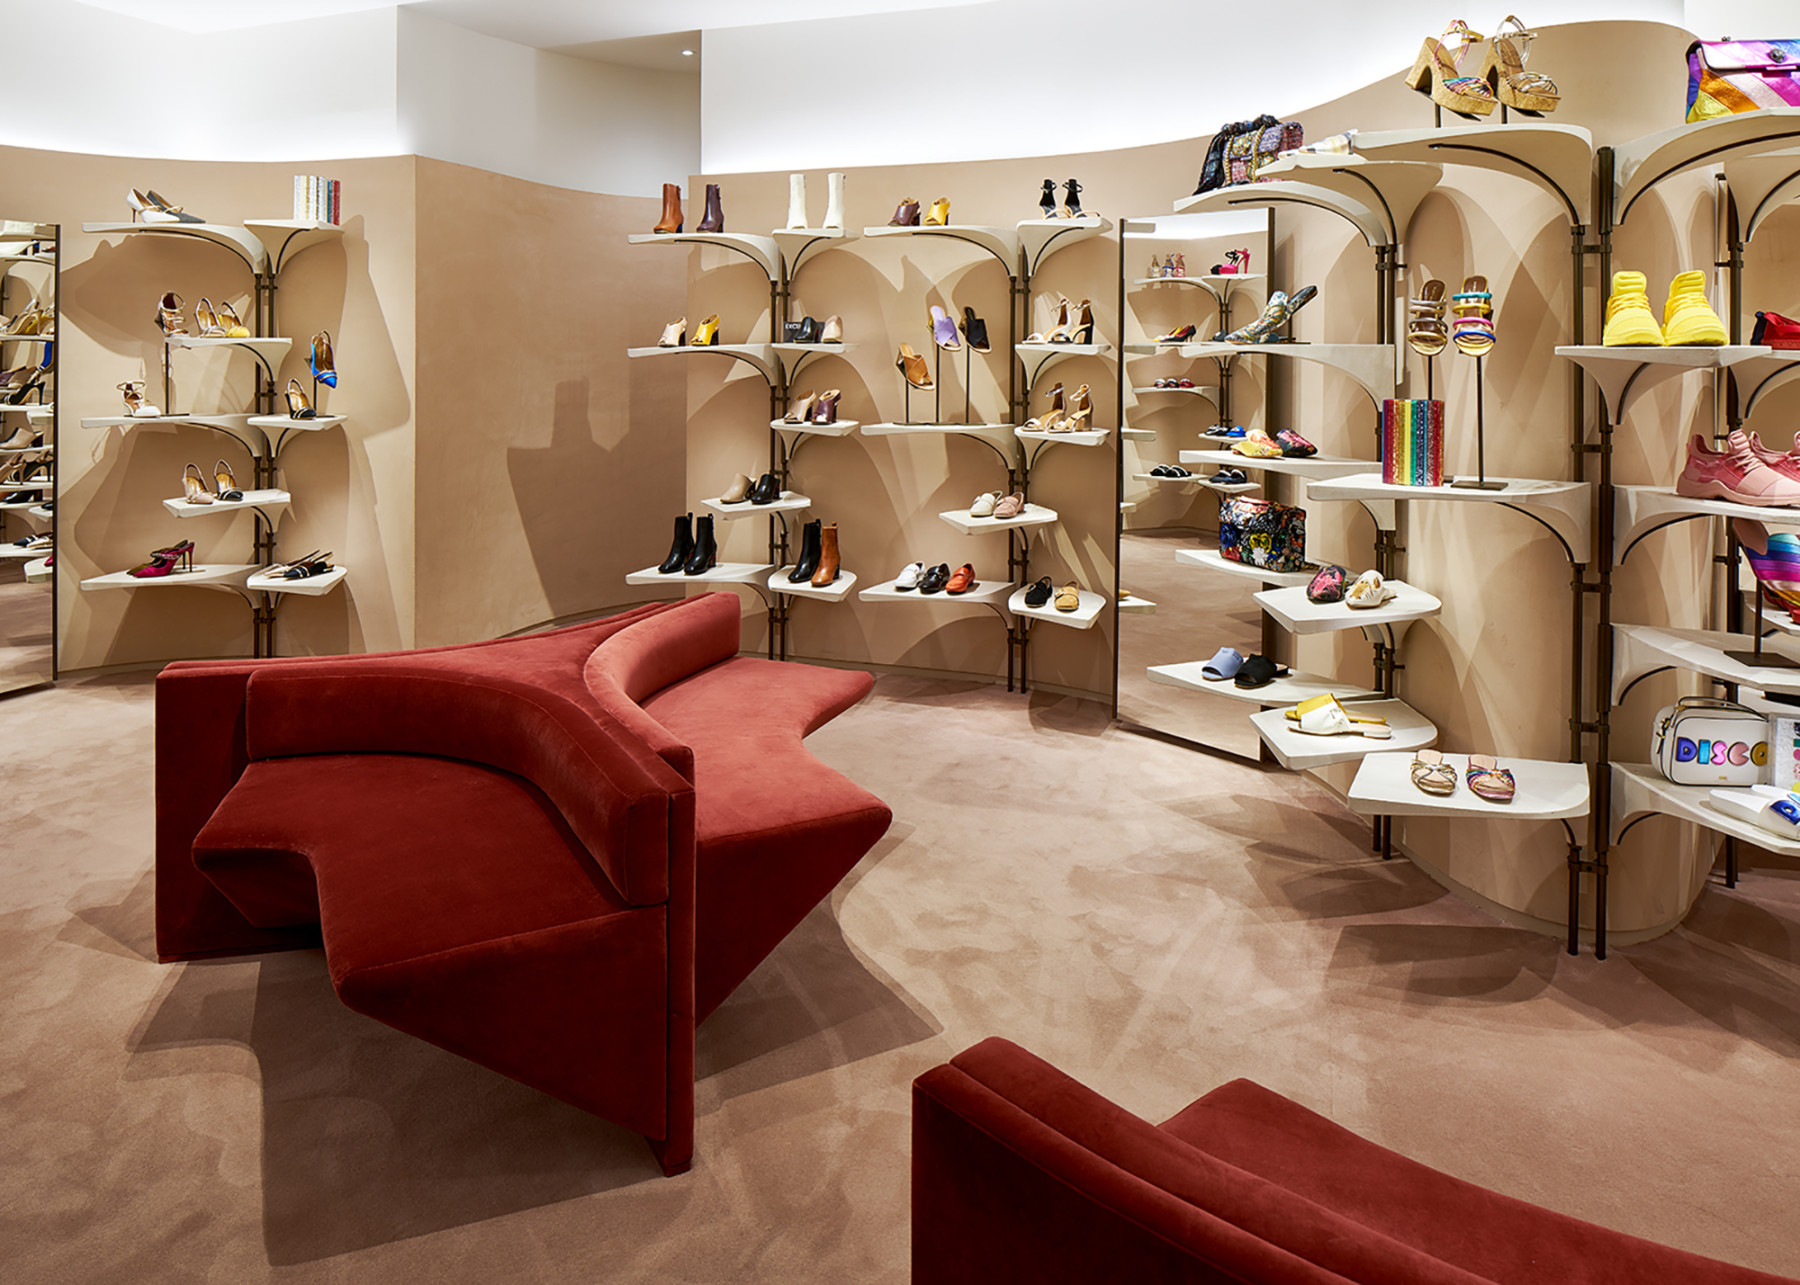 Jamie-Fobert-Architects-Retail-Interiors-Kurt-Geiger-Selfridges-Design-Concept-3